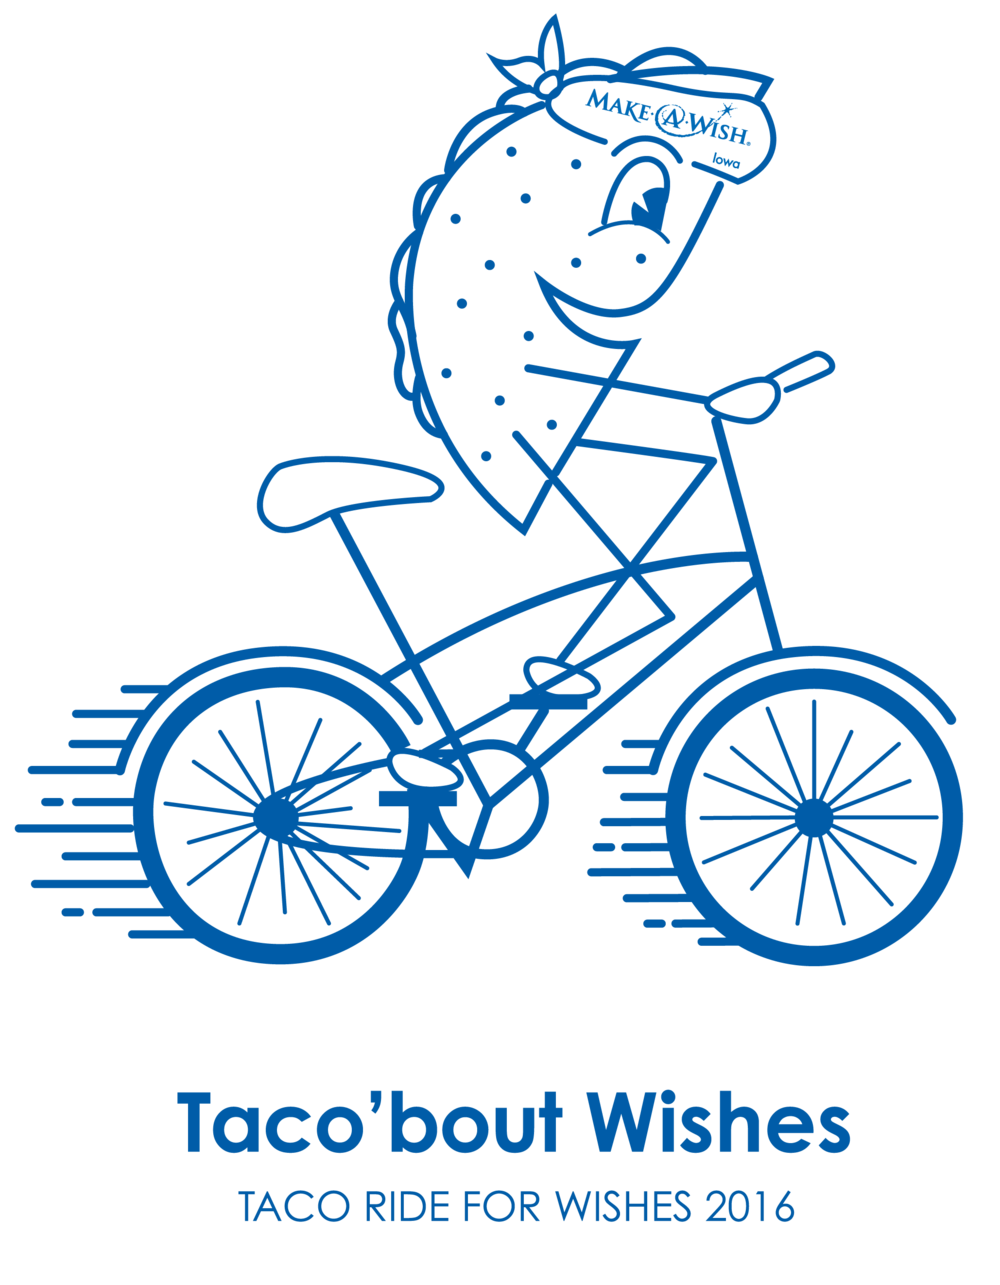 Makeawish_tacoride_graphic_blue_logo